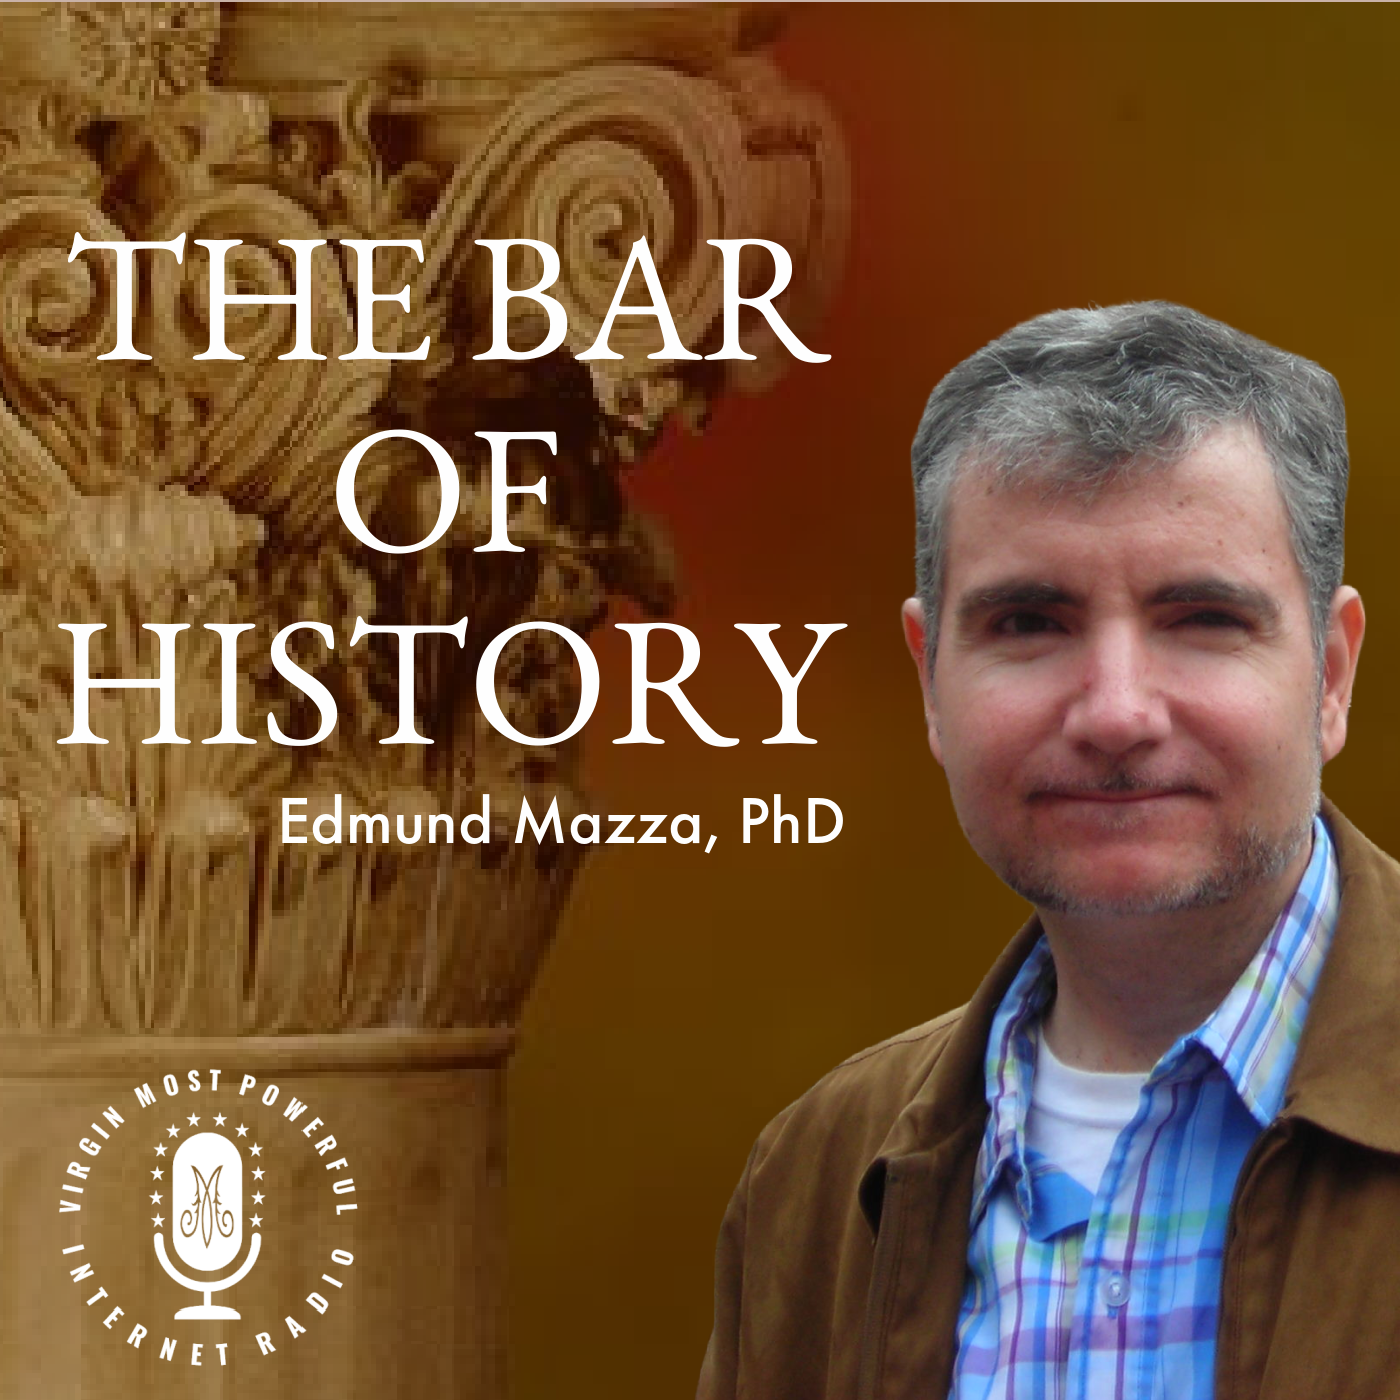 The Bar of History with Dr. Ed Mazza